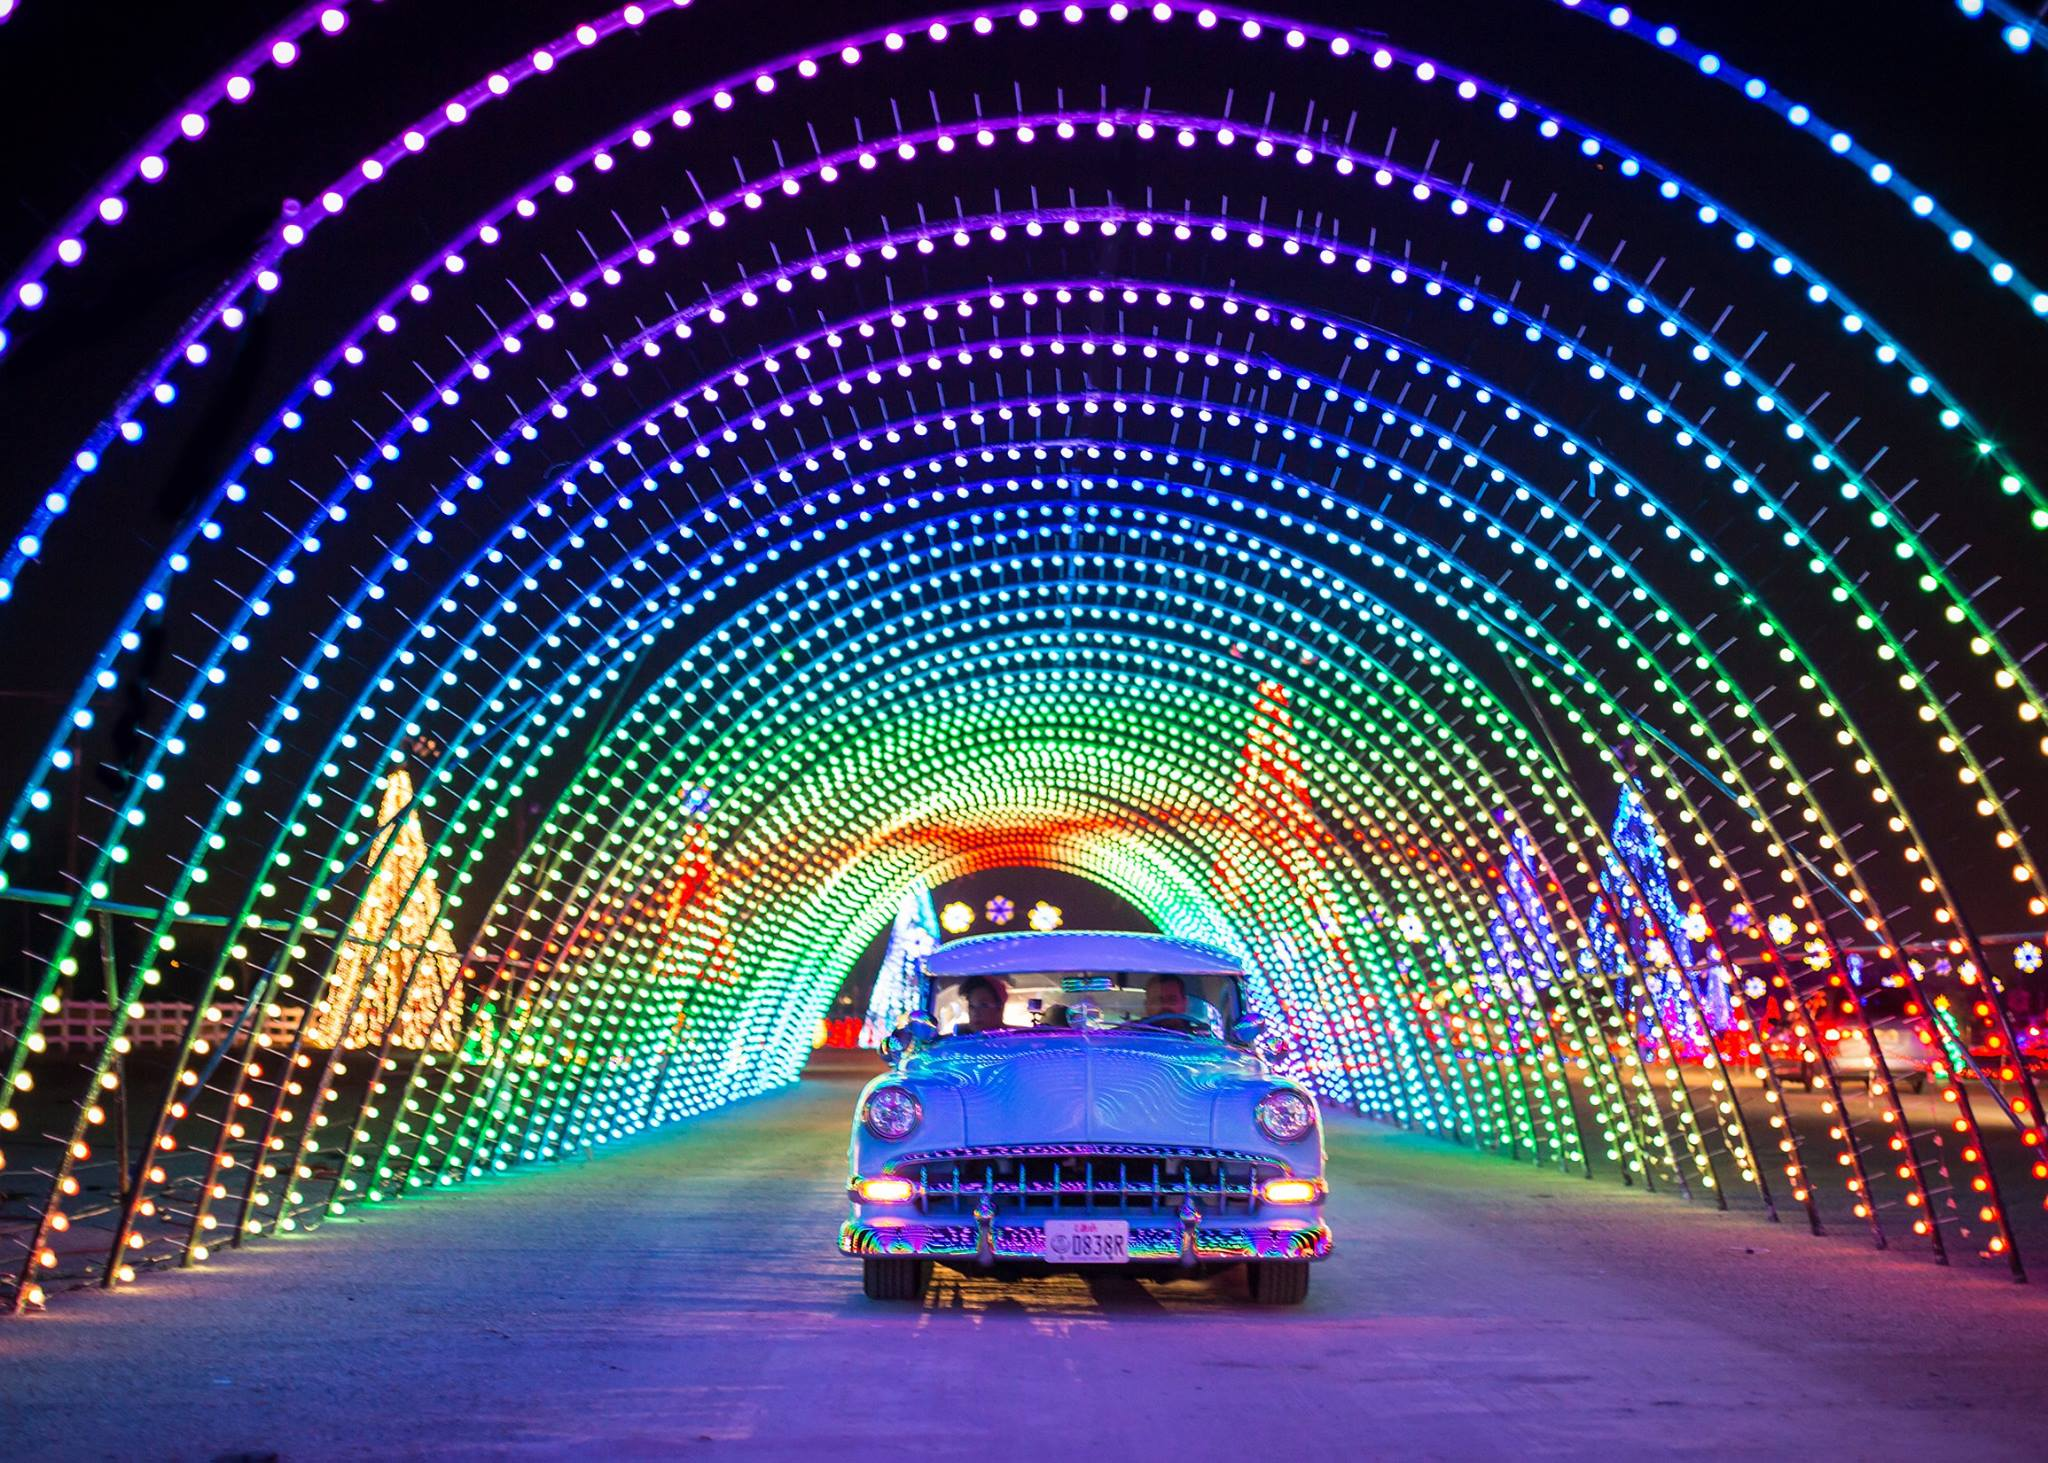 Drive Through Millions Of Lights At The Christmas In Color Holiday Display In Southern California